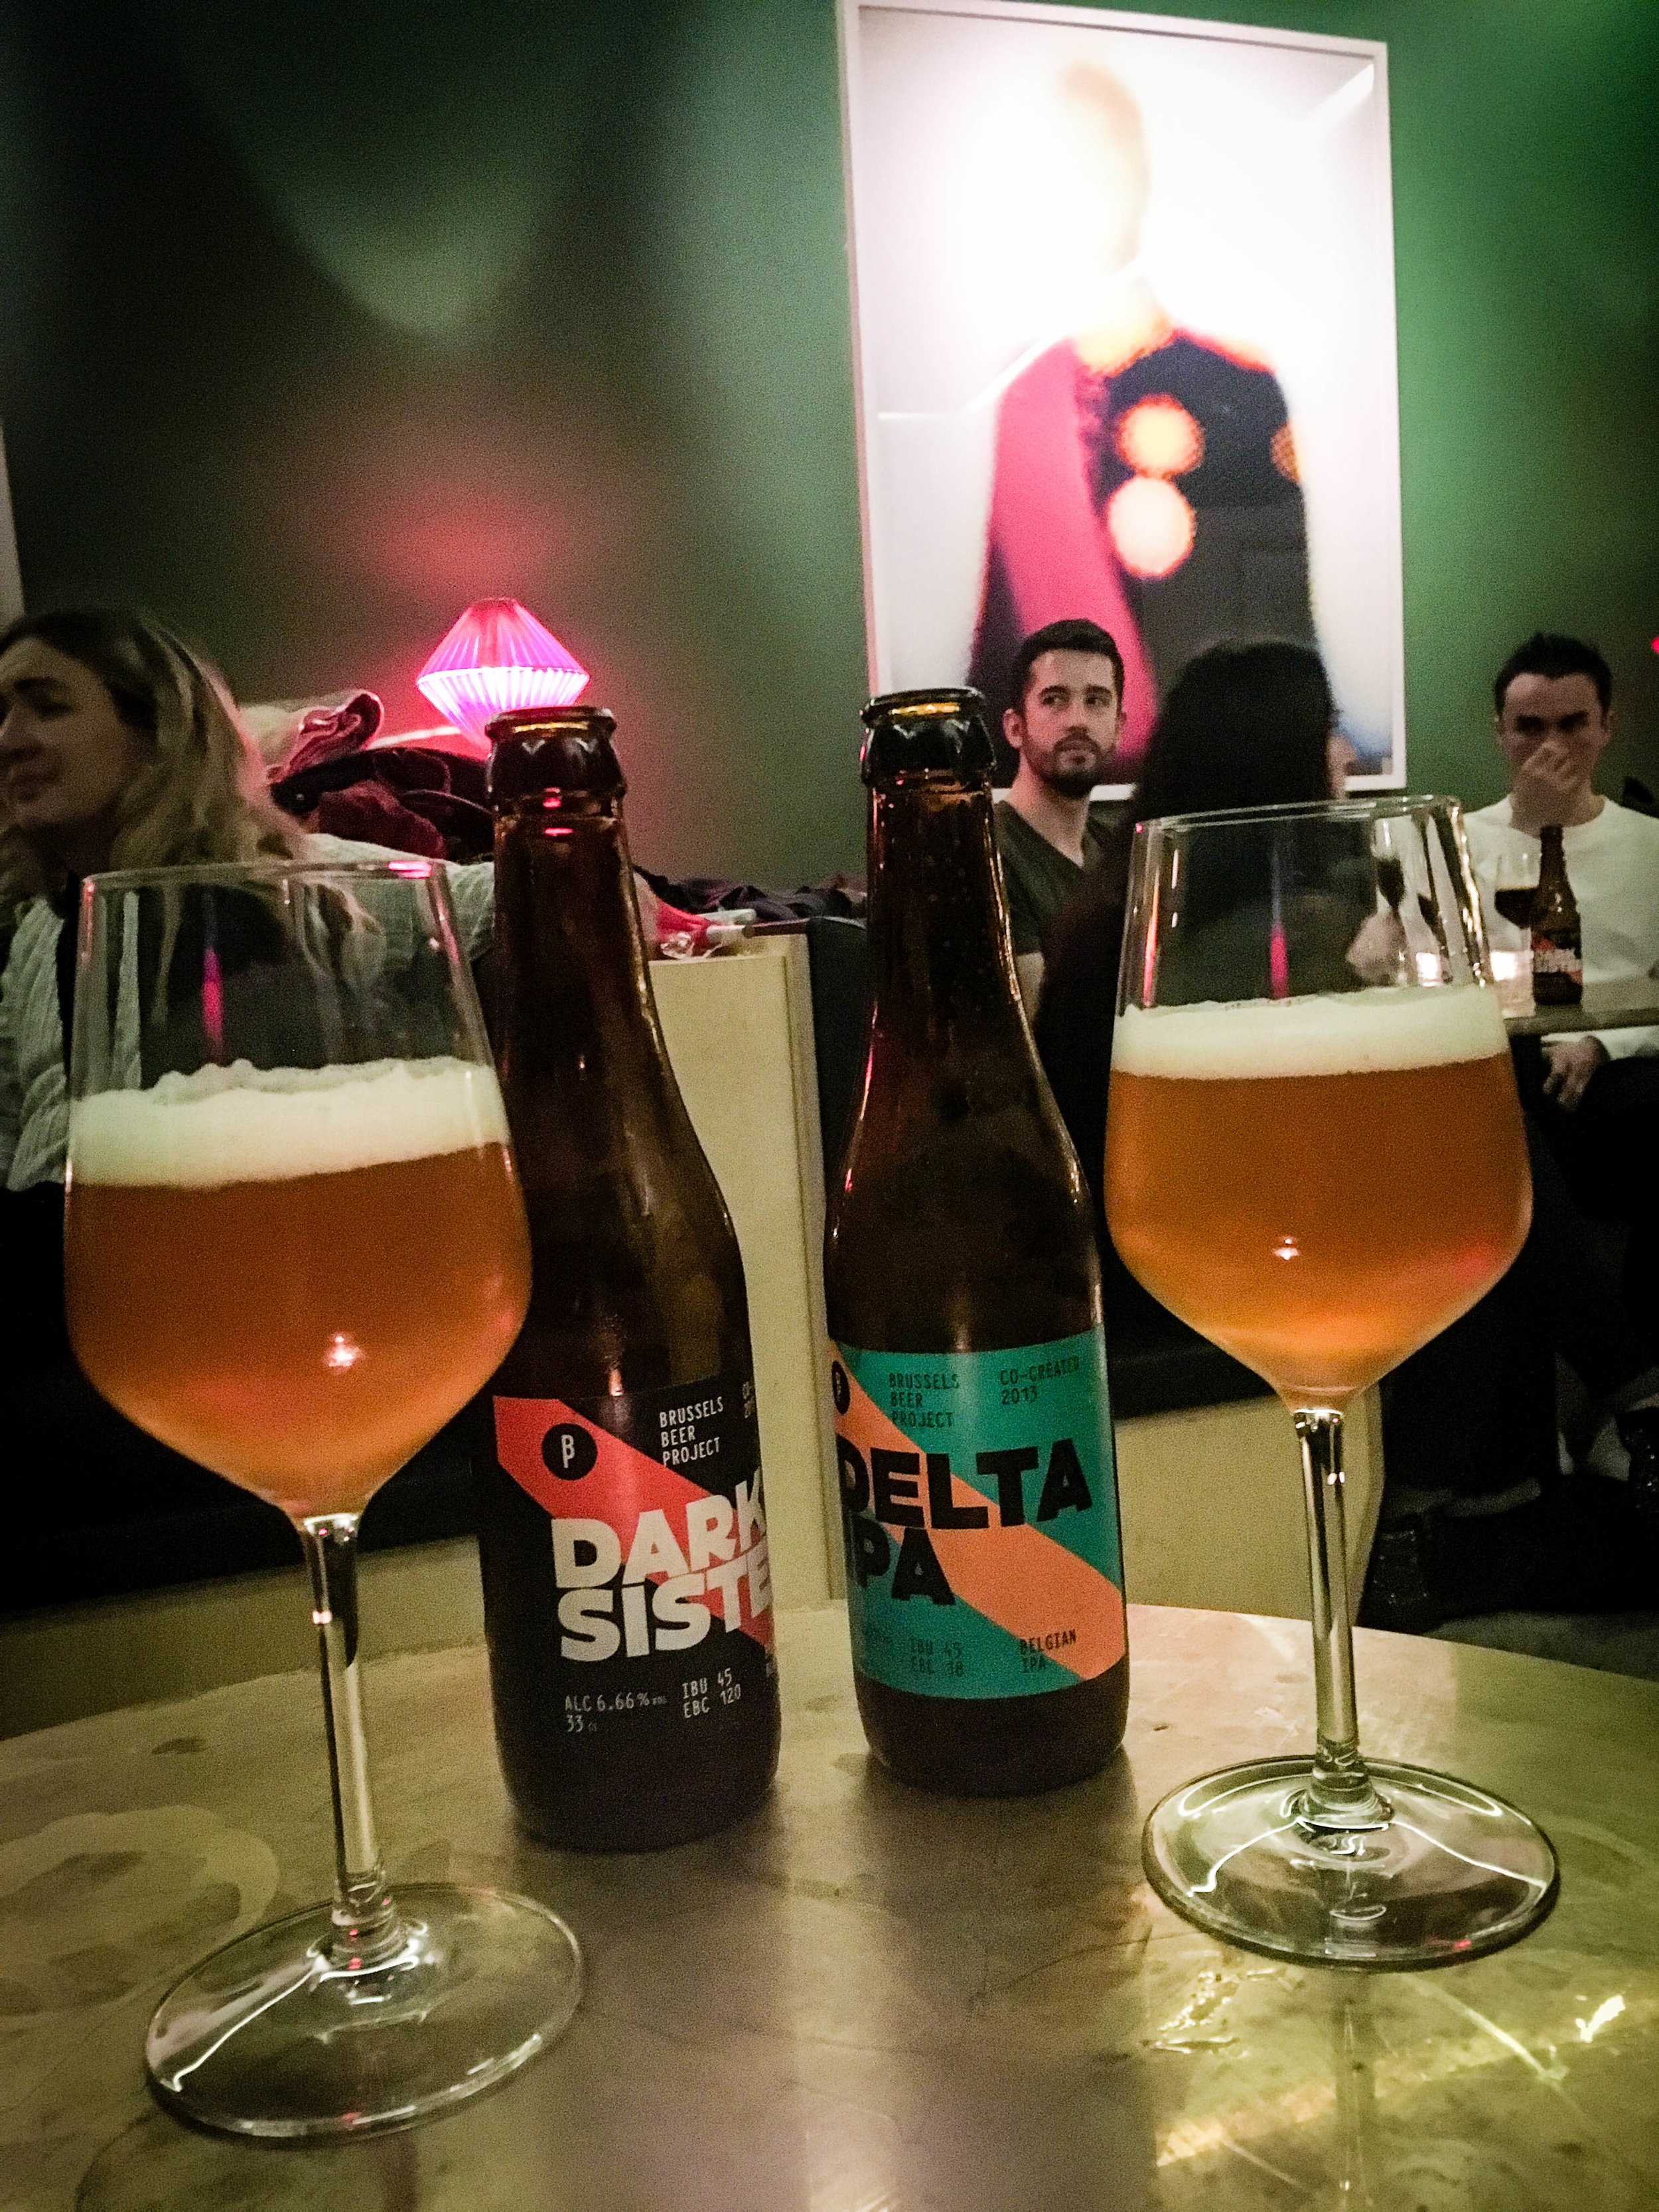 Belgian beer tasting, Dark Sister & Delta IPA, during our Brussels Beer and Chocolate Tour given by Brussels Journey